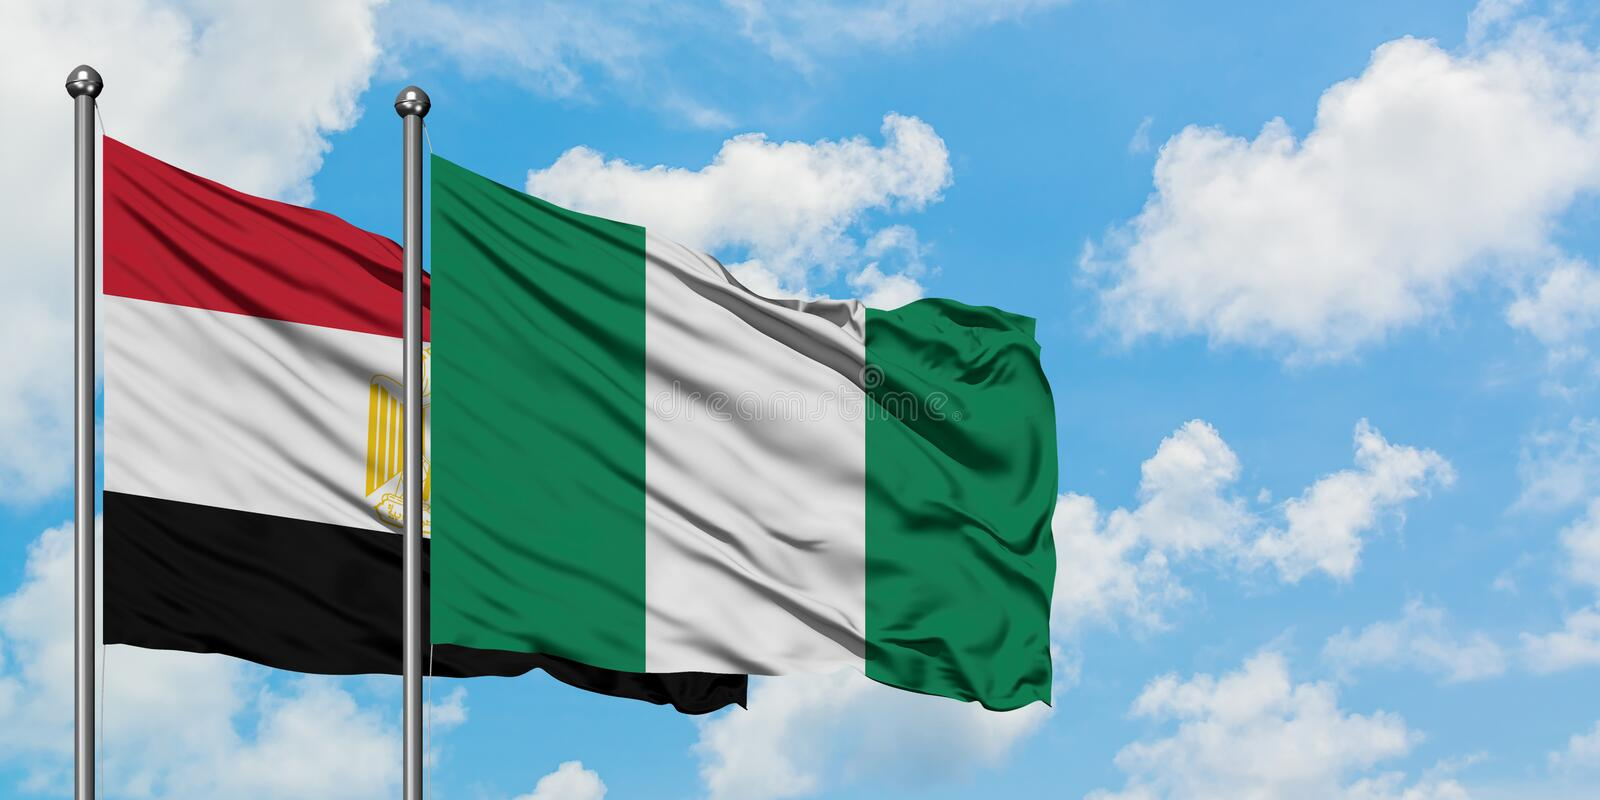 Egypt and Nigeria flag waving in the wind against white cloudy blue sky together. Diplomacy concept, international relations. Waving in the wind against white royalty free stock photo